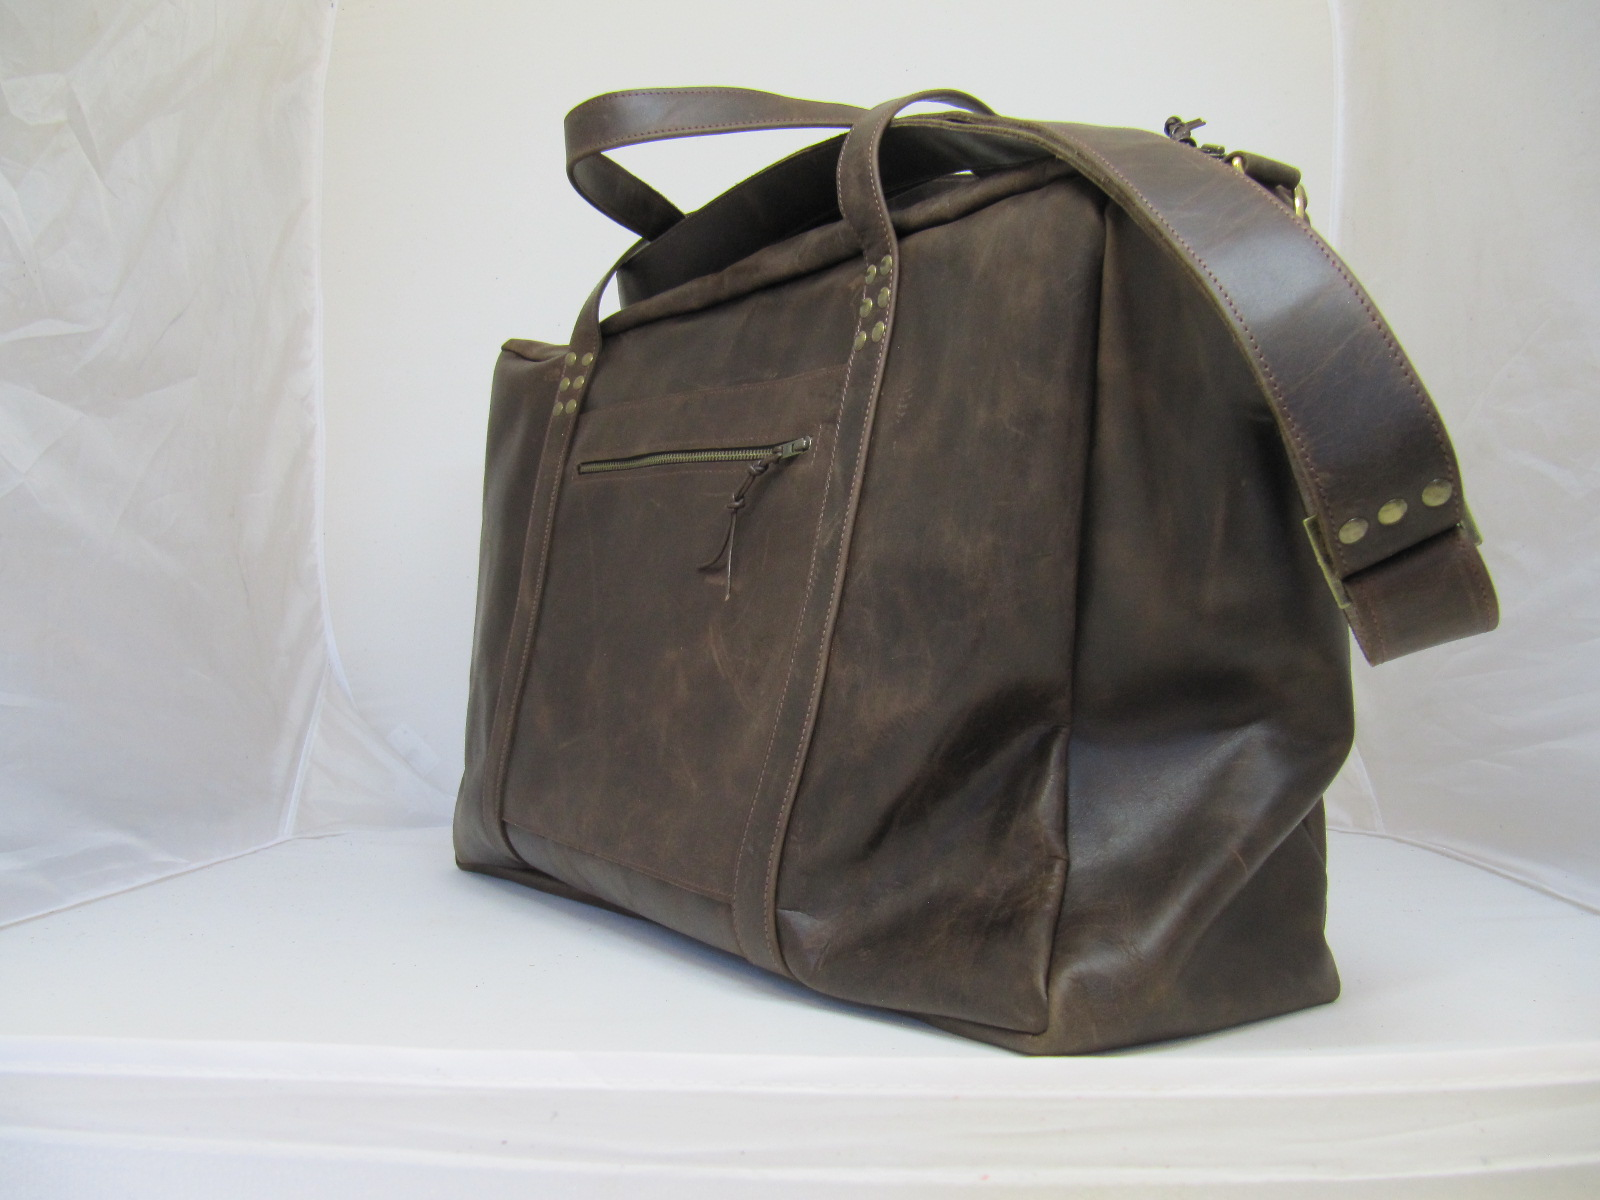 Flight Travel Bag in vintage leather